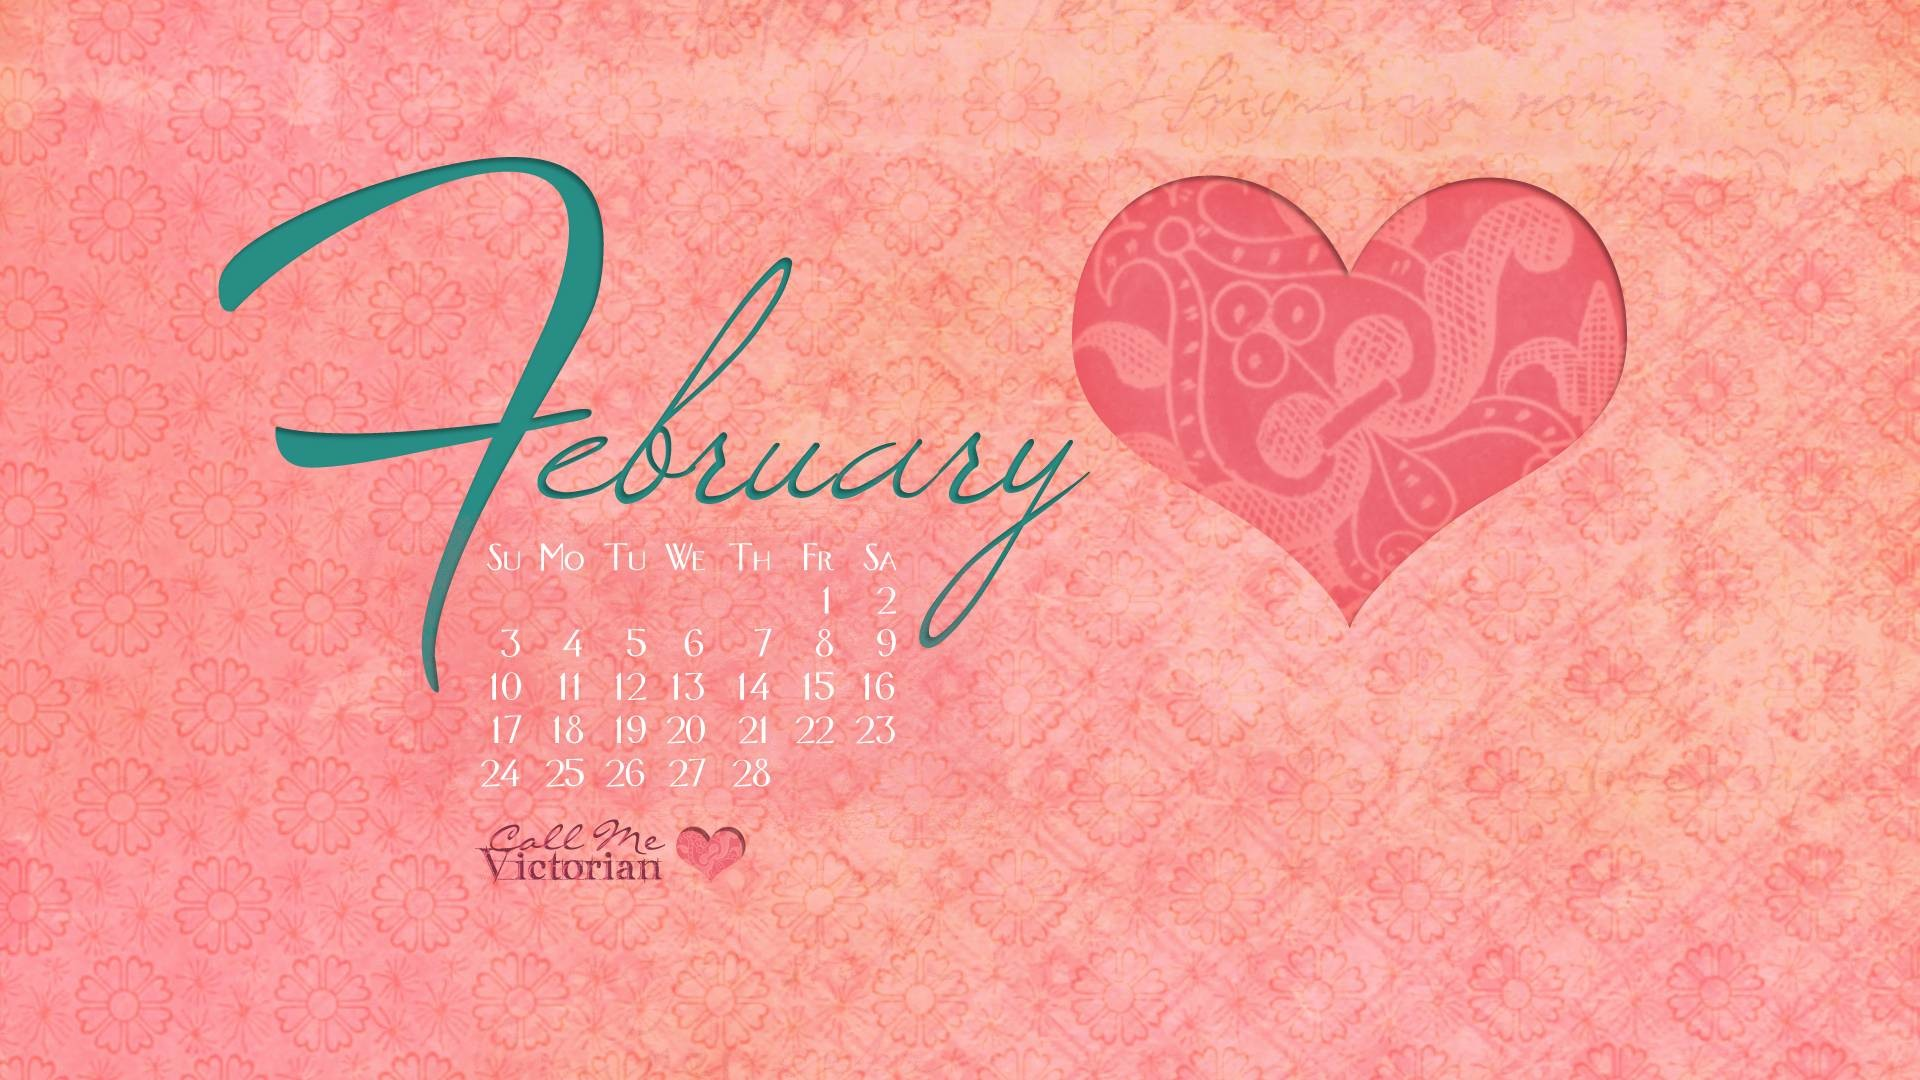 kashmir day th february Wallpapers Points | HD Wallpapers | Pinterest |  Wallpaper